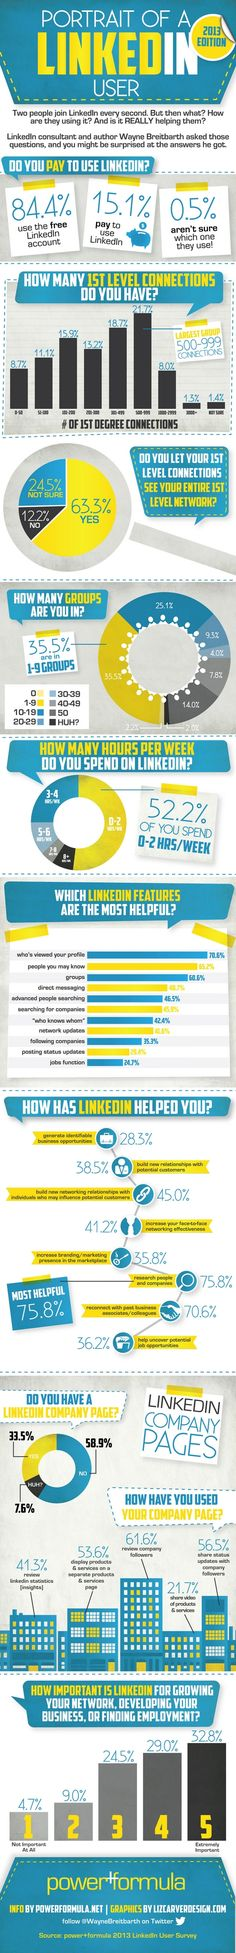 How are people using LinkedIn in 2013 ?